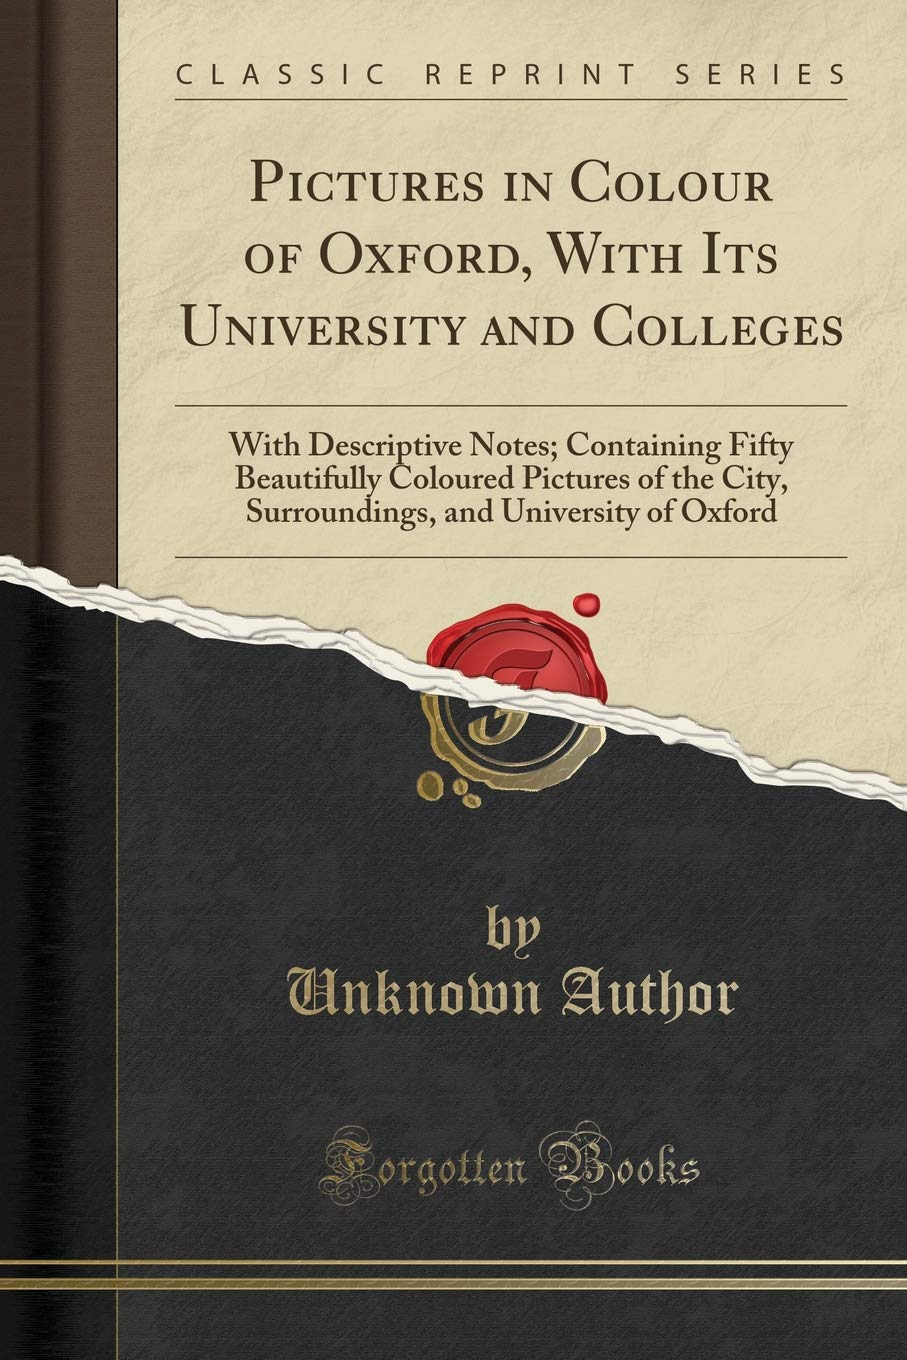 Pictures in Colour of Oxford, With Its University and Colleges: With Descriptive Notes; Containing Fifty Beautifully Coloured Pictures of the City, ... and University of Oxford (Classic Reprint) PDF